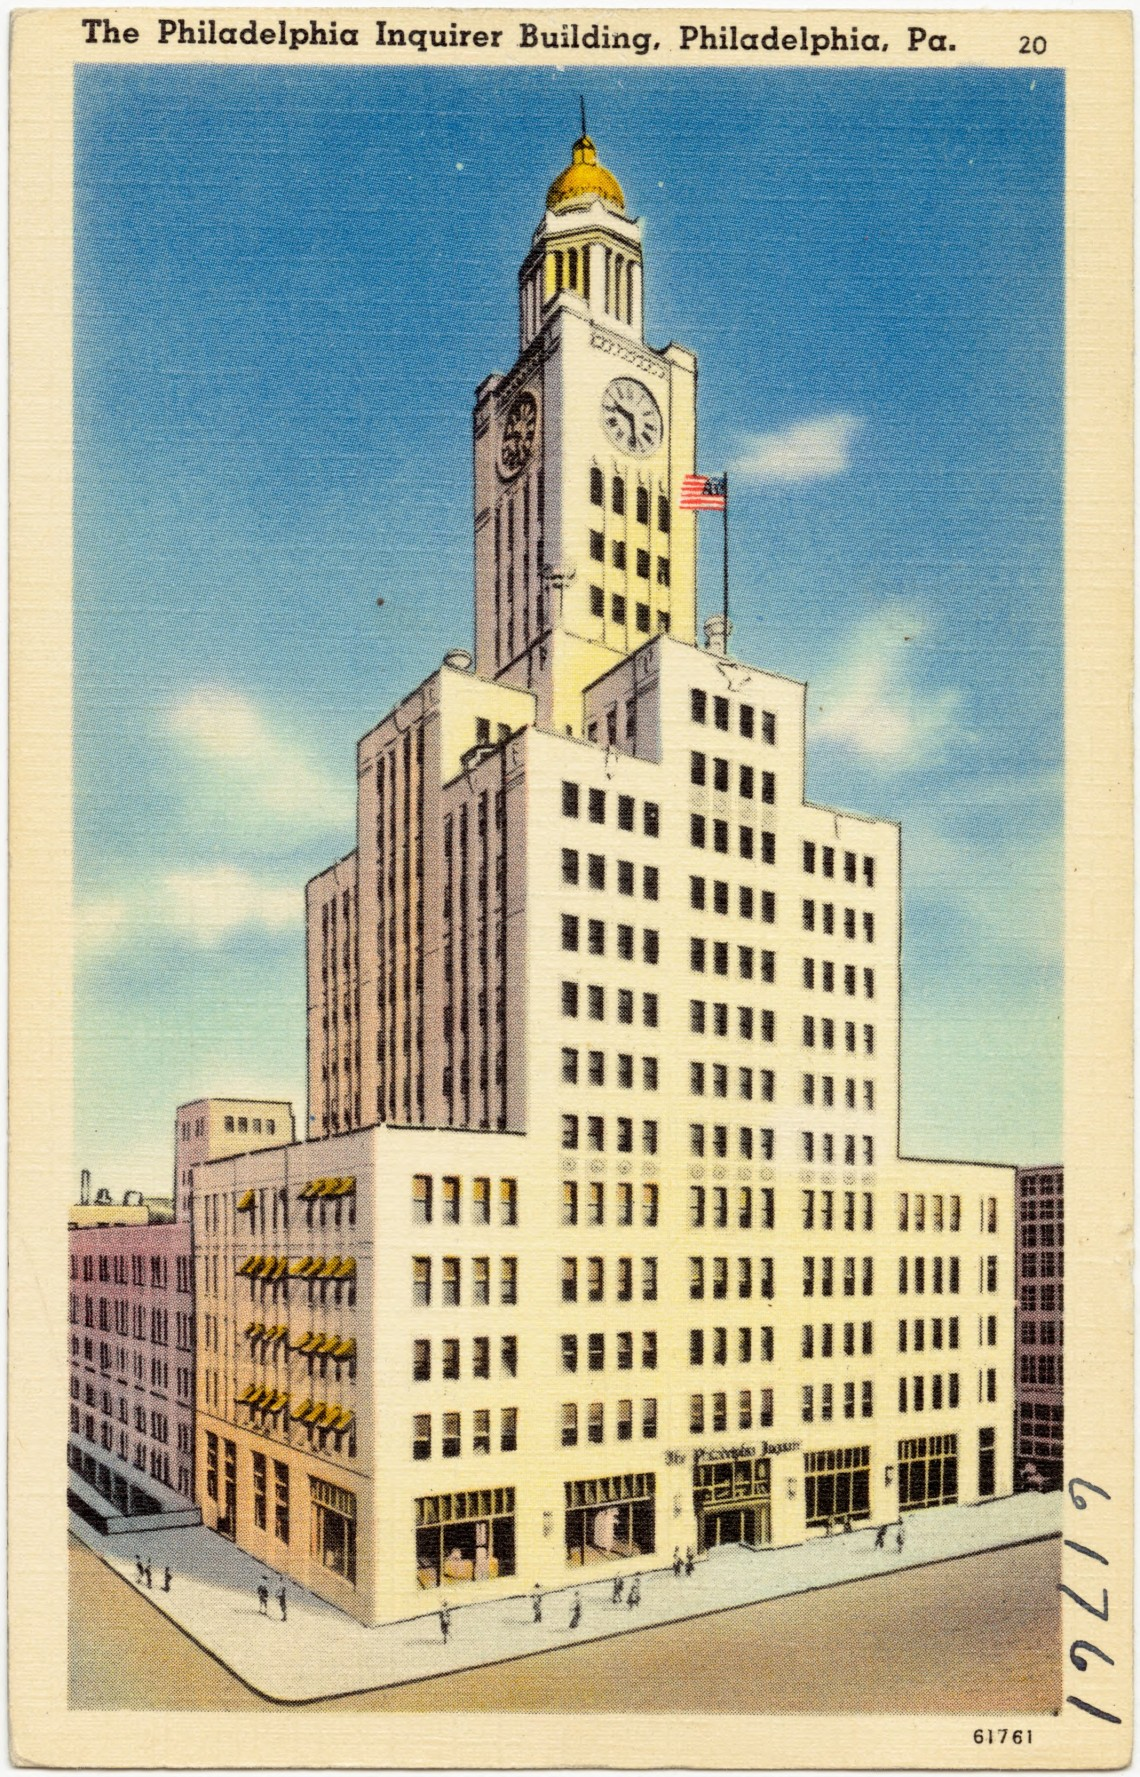 Inquirer Building circa 1930 to 1945_public domain